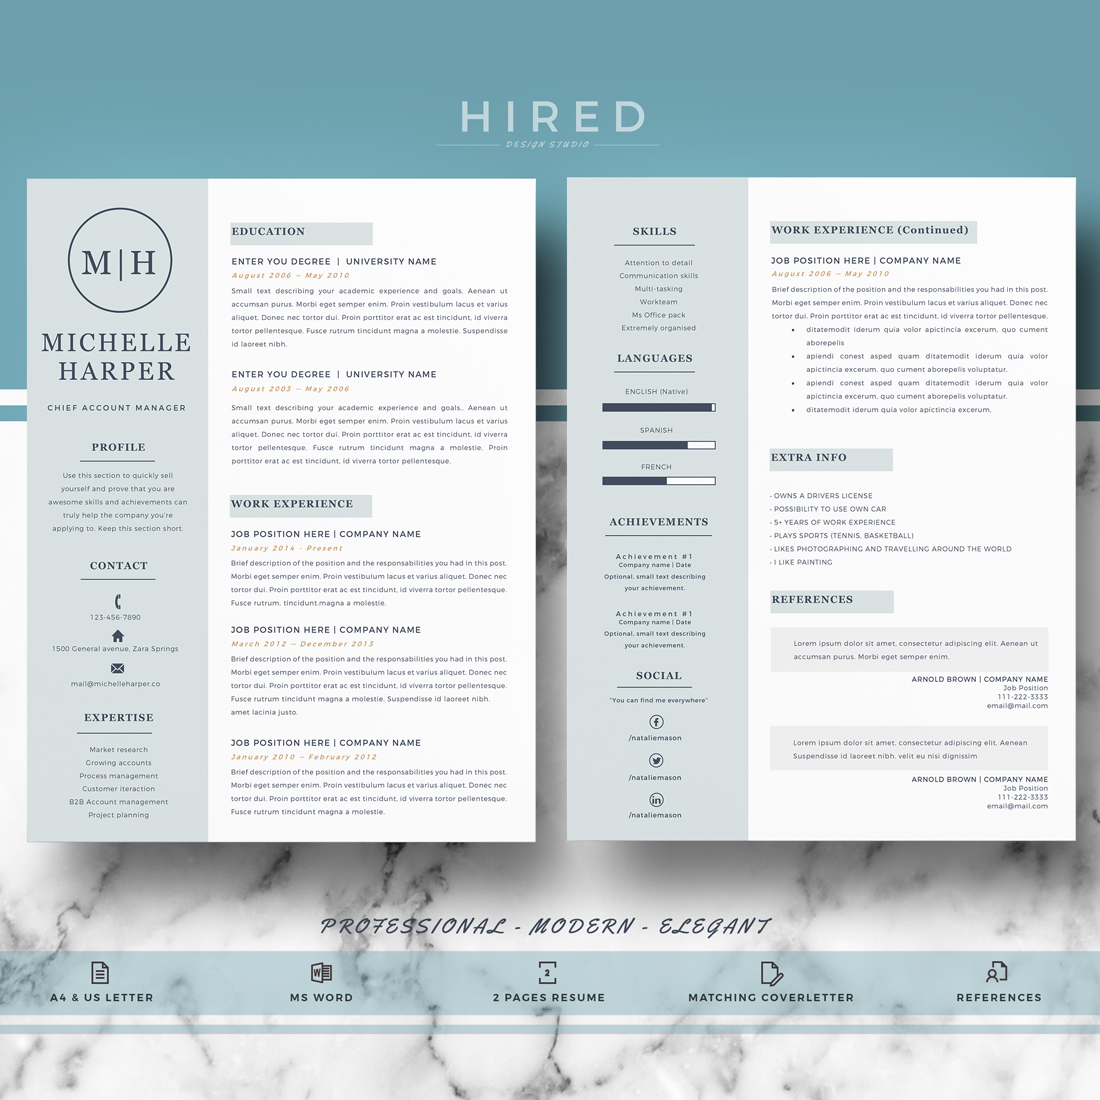 Curriculum Vitae Archives Page 5 Of 5 Hired Design Studio